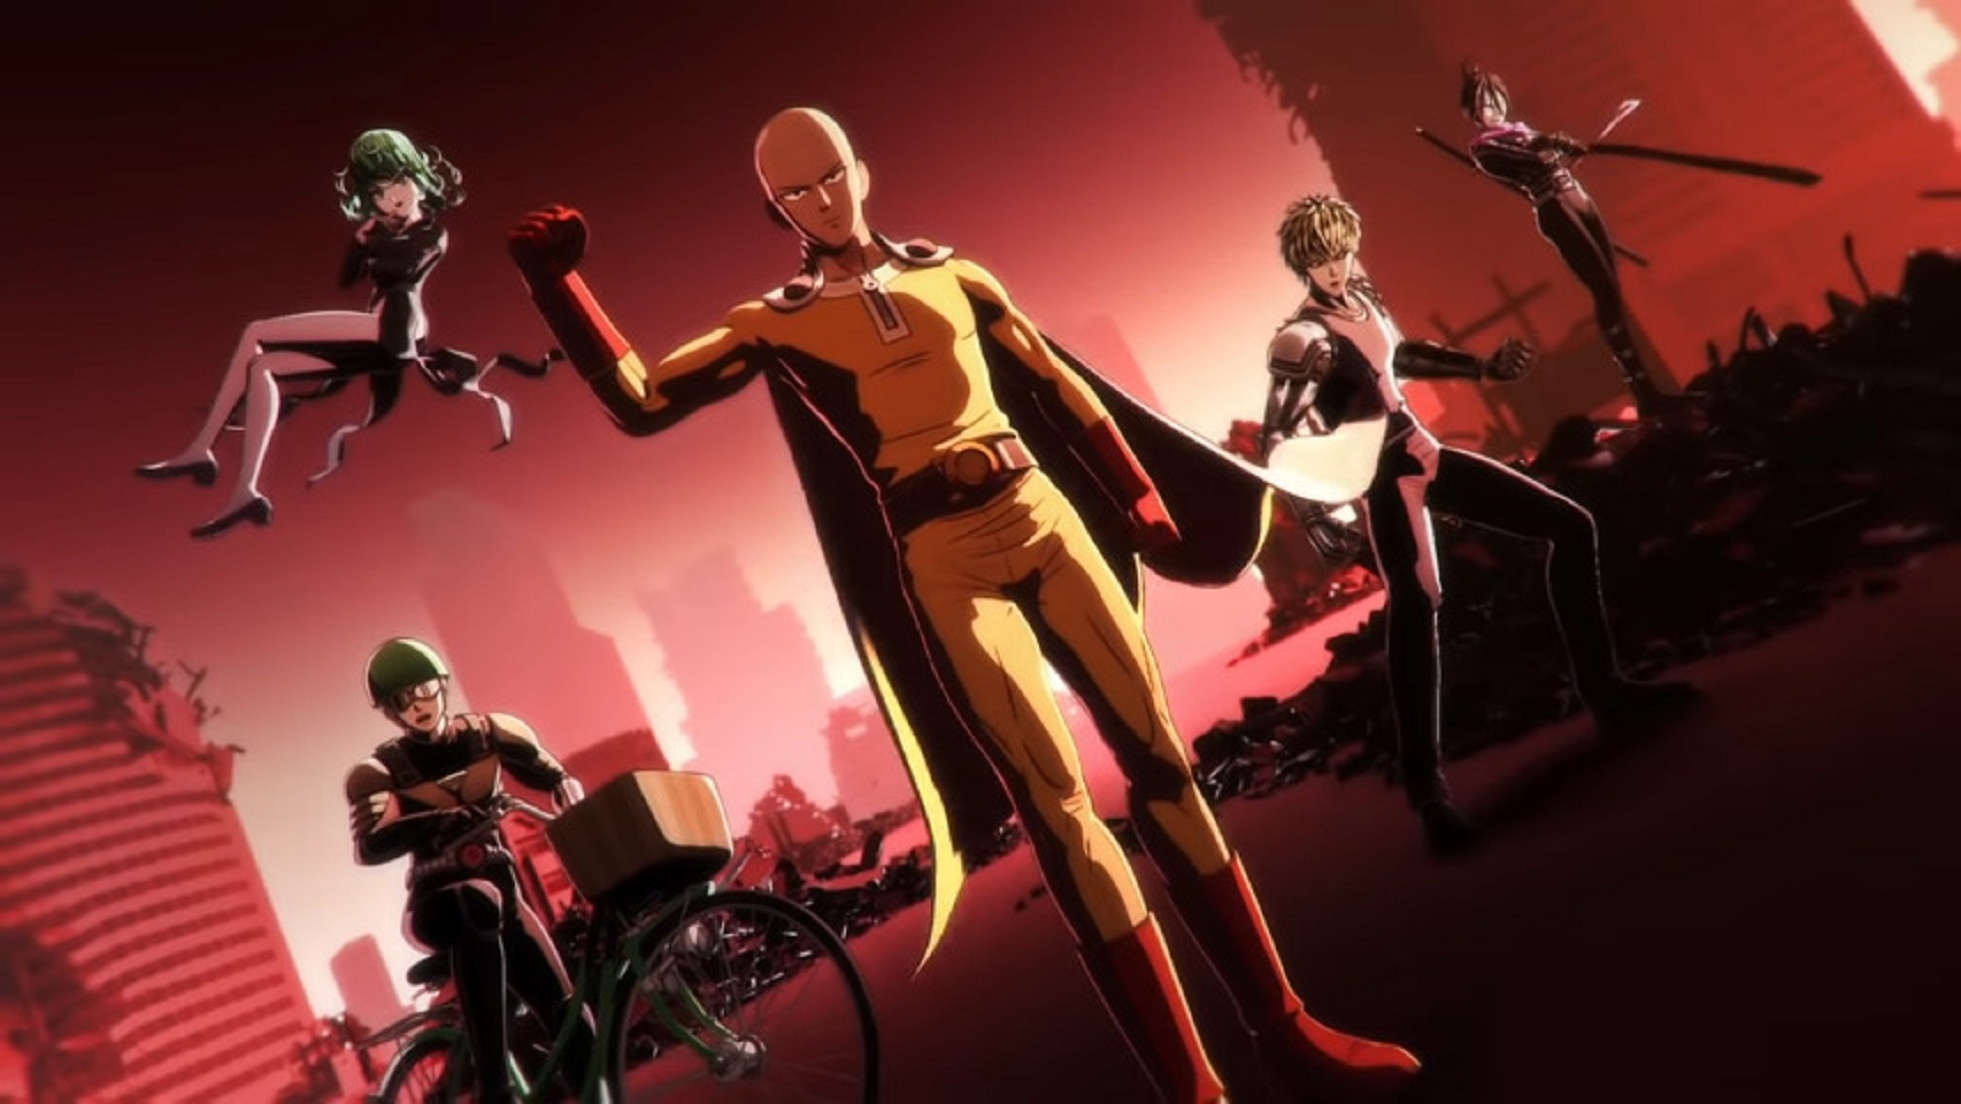 Bandai Namco Releases An Opening Video That Gives Fans A Peak Into The Upcoming Release Of  One Punch Man: A Hero N.K